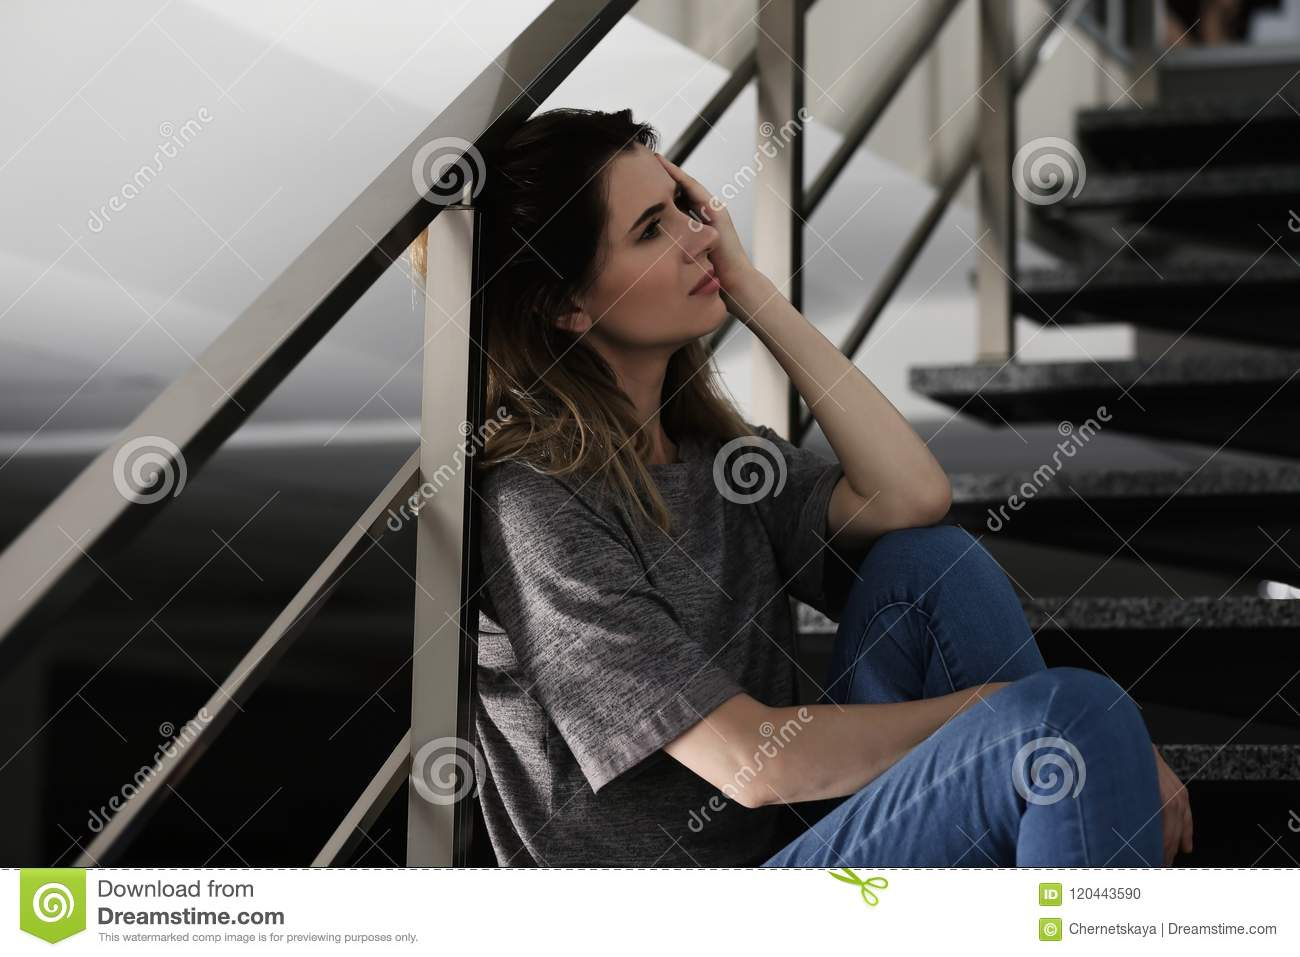 Lonely depressed woman sitting on stairs